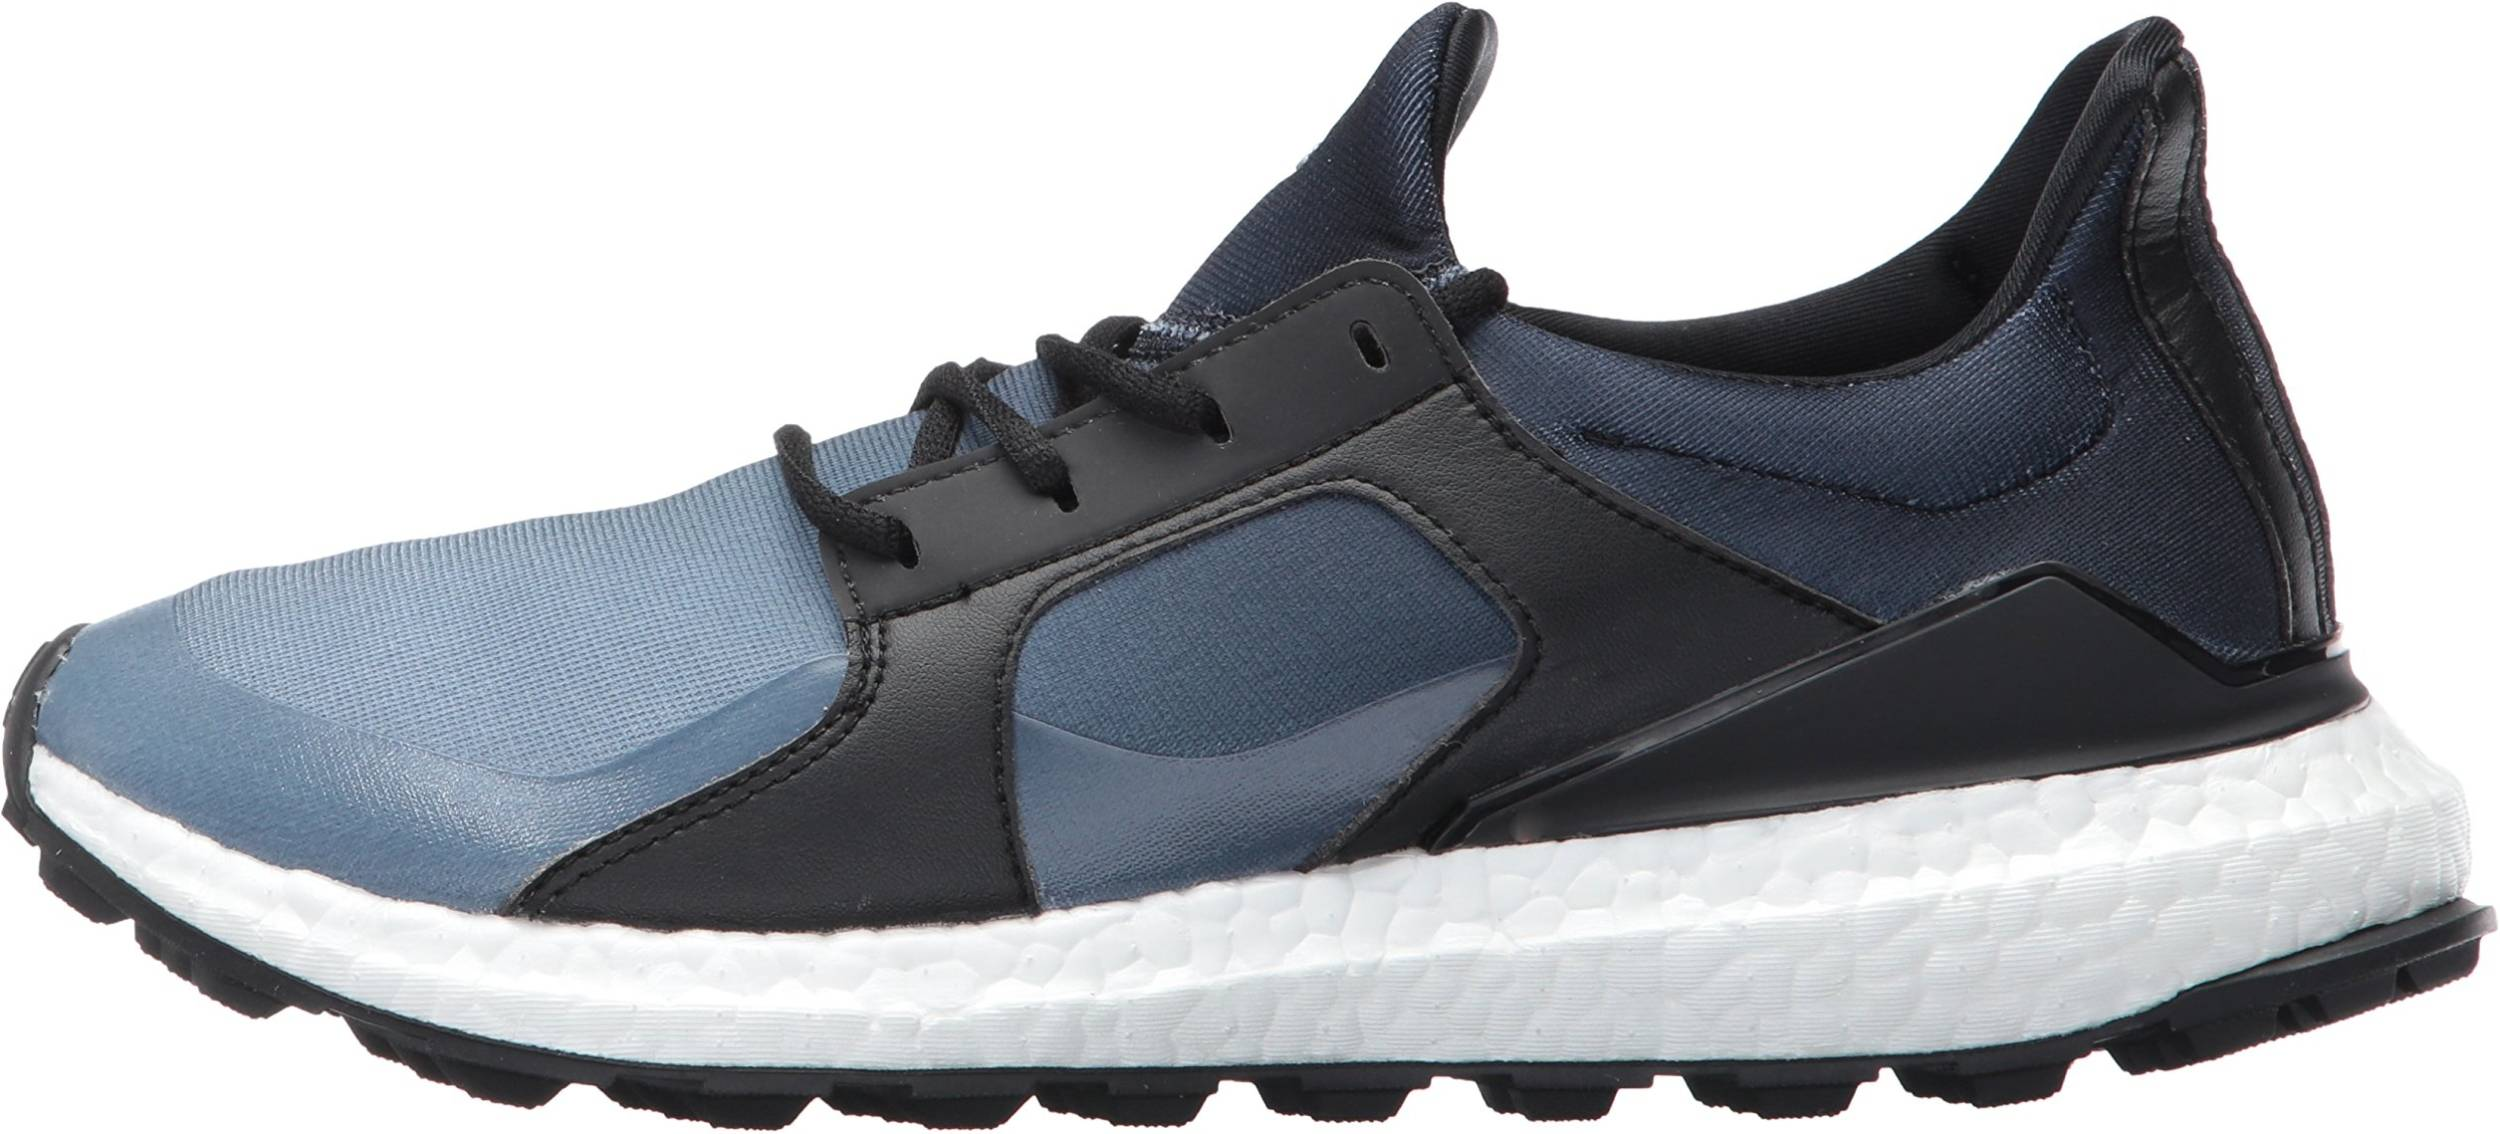 Only 50 Buy Adidas Climacross Boost Runrepeat